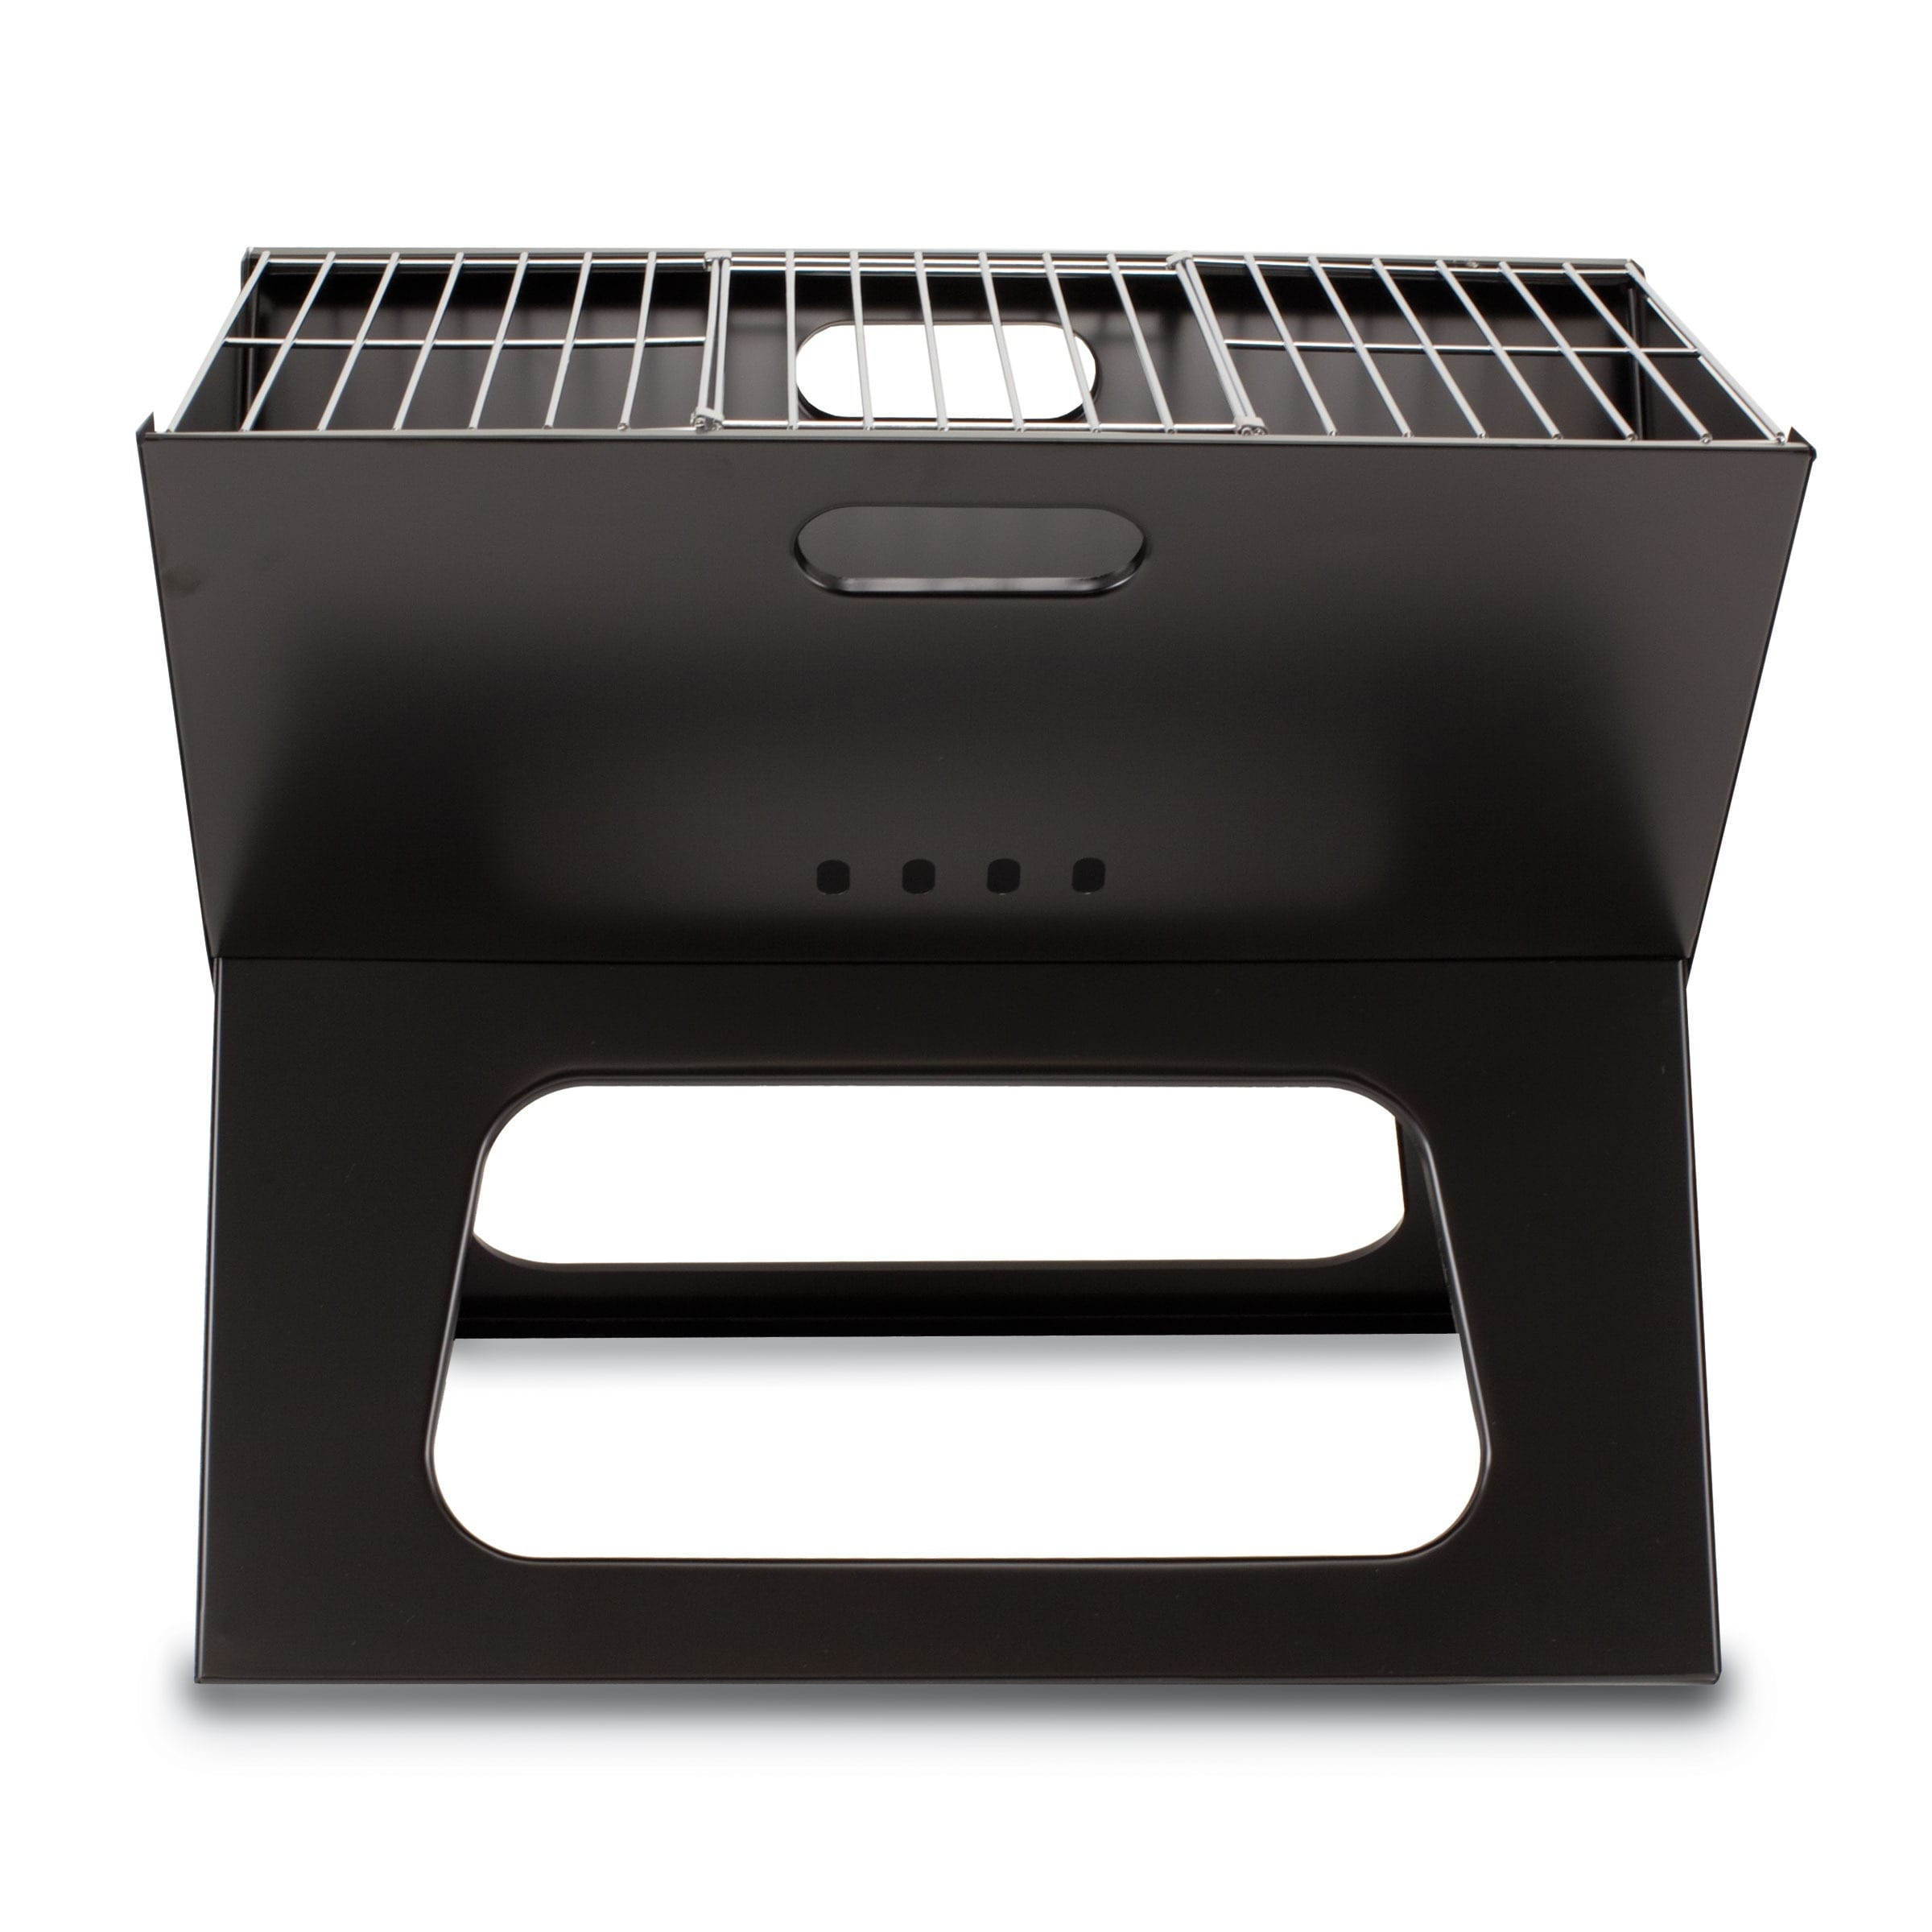 Picnic-Time-X-Grill-18.5-inch-Chrome-plated-Charcoal-Barbecue-2c23f4cd-d4a1-41f3-96ac-1bd41bd78d76 Luxe De Brico Depot Barbecue Concept